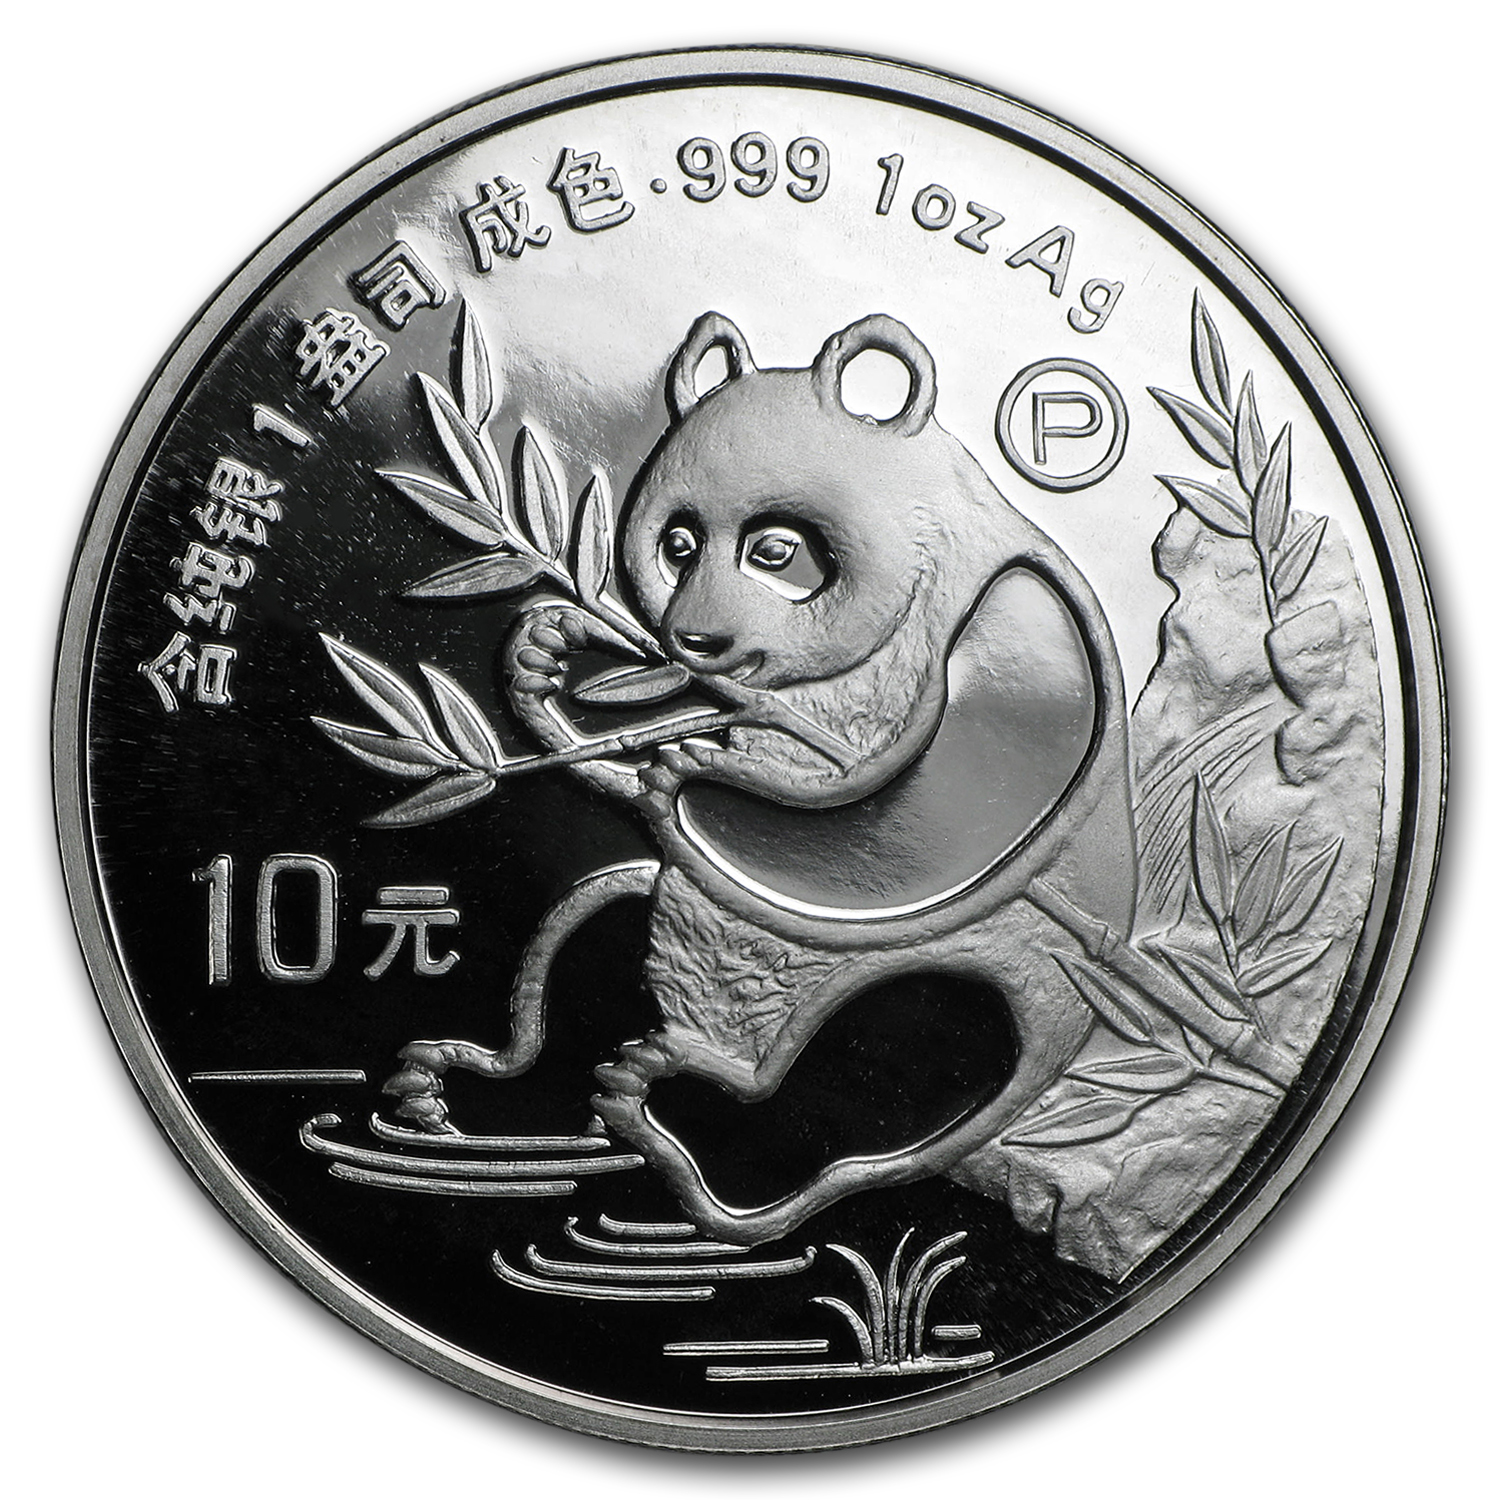 1991 China 1 oz Silver Panda Proof (w/Box & COA)